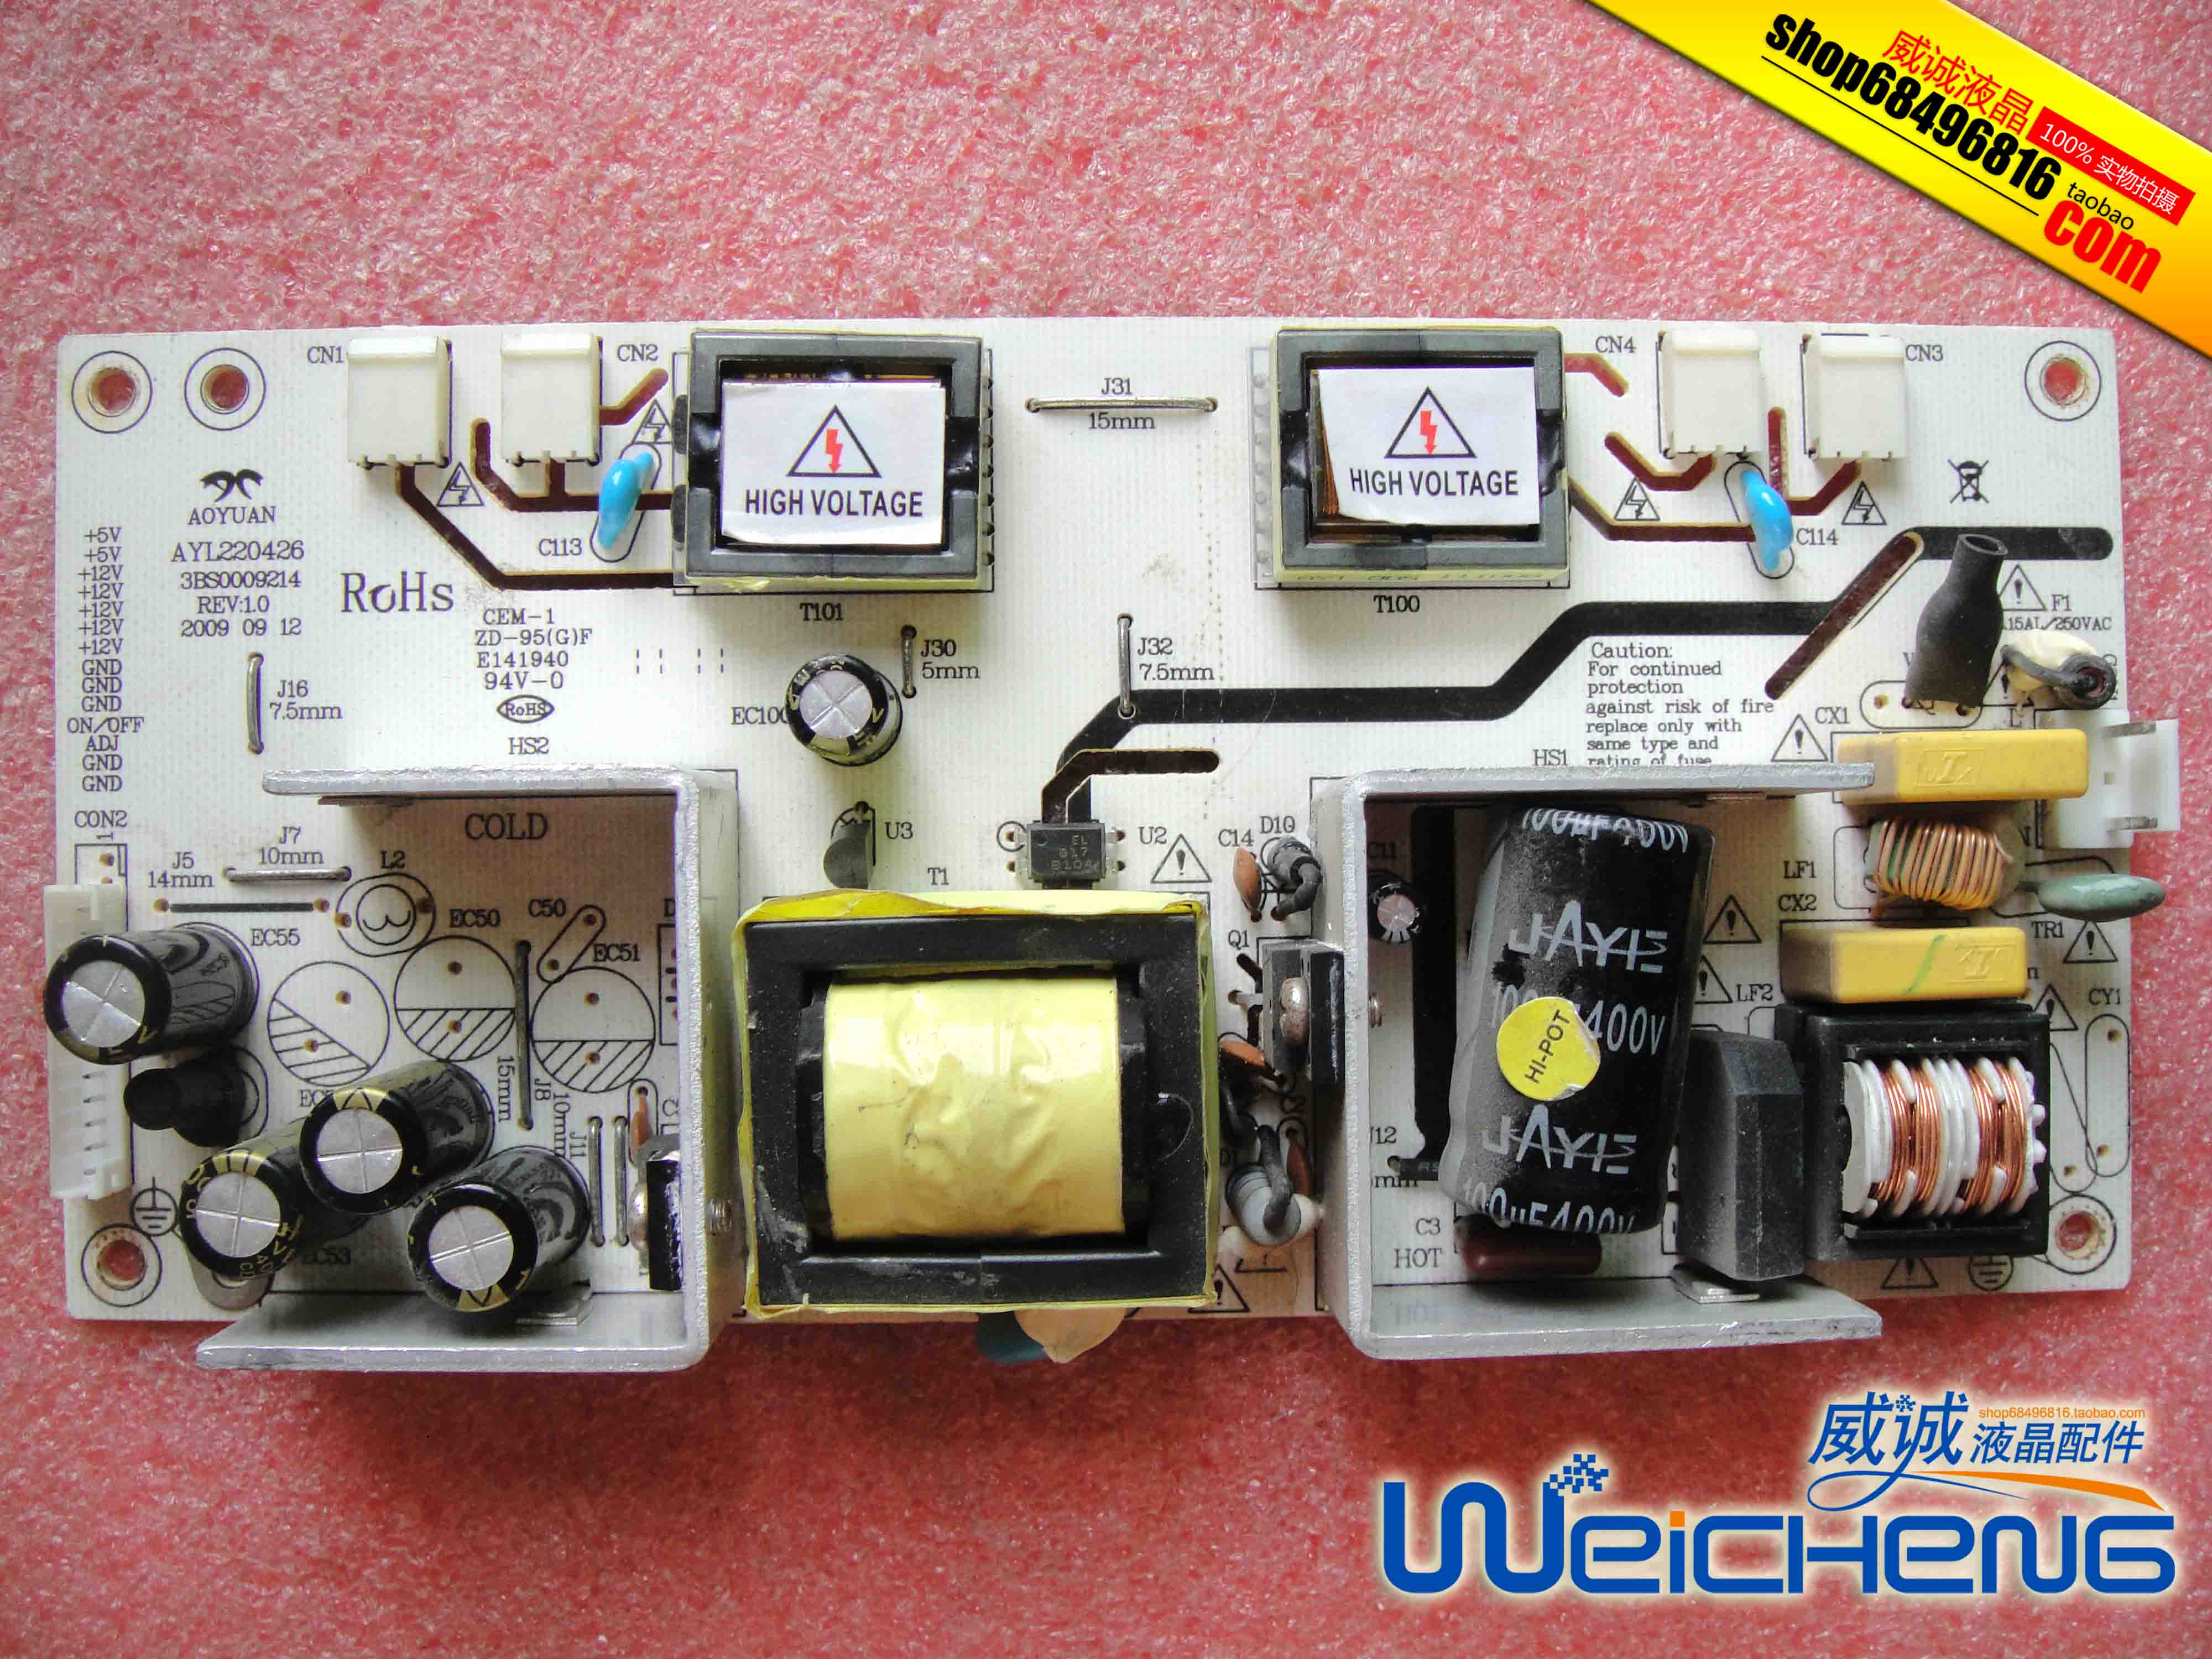 2493hm 245b Driver Board Hubble Sr Bn41 00866a In Lcd Asus Vw223 Monitor Power Supply And Inverter Schematic Ayl220426 12v High Voltage 3bs0009214 E141940